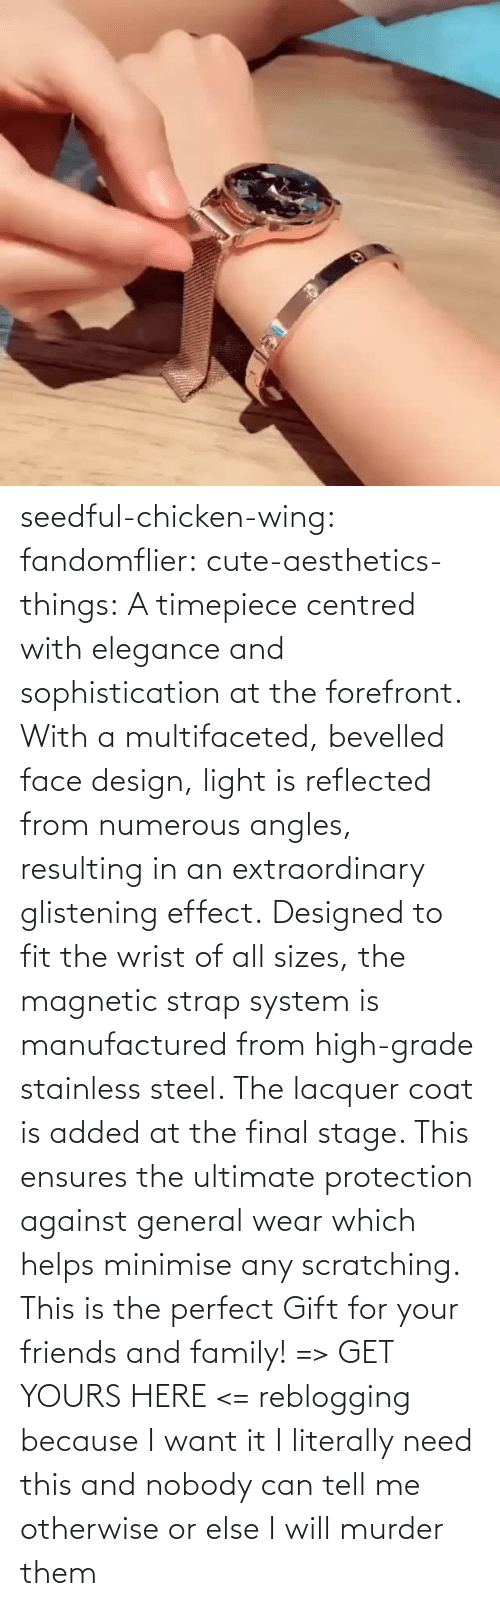 img: seedful-chicken-wing: fandomflier:  cute-aesthetics-things:   A timepiece centred with elegance and sophistication at the forefront. With a multifaceted, bevelled face design, light is reflected from numerous angles, resulting in an extraordinary glistening effect. Designed to fit the wrist of all sizes, the magnetic strap system is manufactured from high-grade stainless steel. The lacquer coat is added at the final stage. This ensures the ultimate protection against general wear which helps minimise any scratching. This is the perfect Gift for your friends and family! => GET YOURS HERE <=   reblogging because I want it  I literally need this and nobody can tell me otherwise or else I will murder them